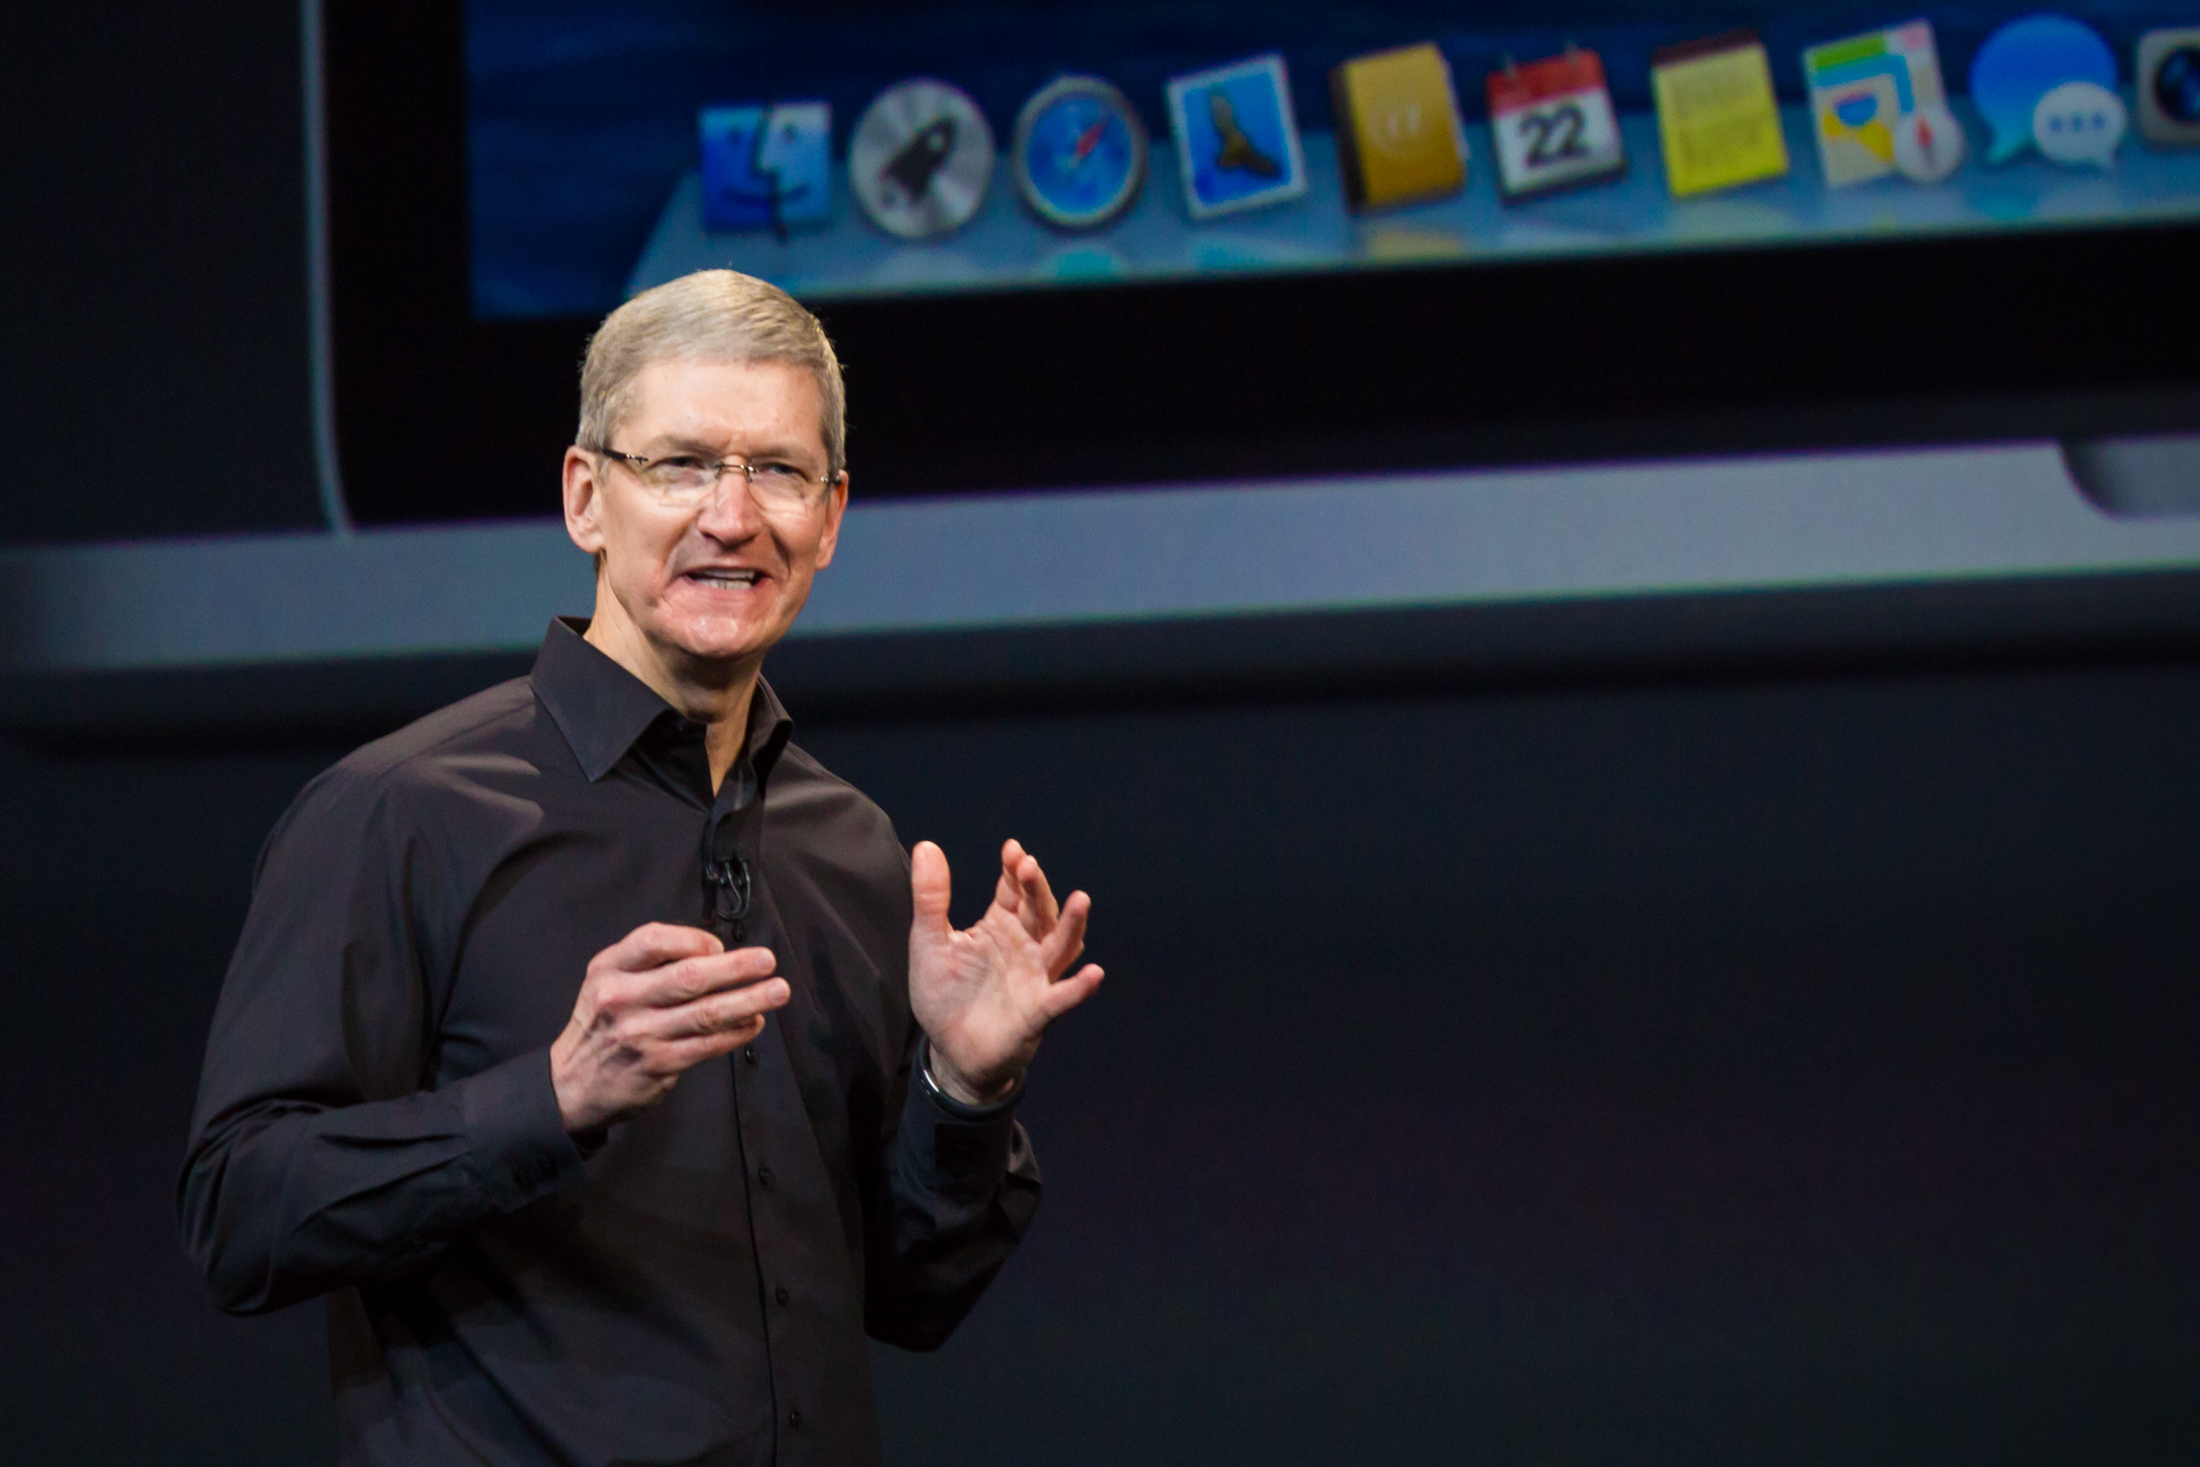 Apple CEO Tim Cook has been a vocal supporter of LGBT rights.